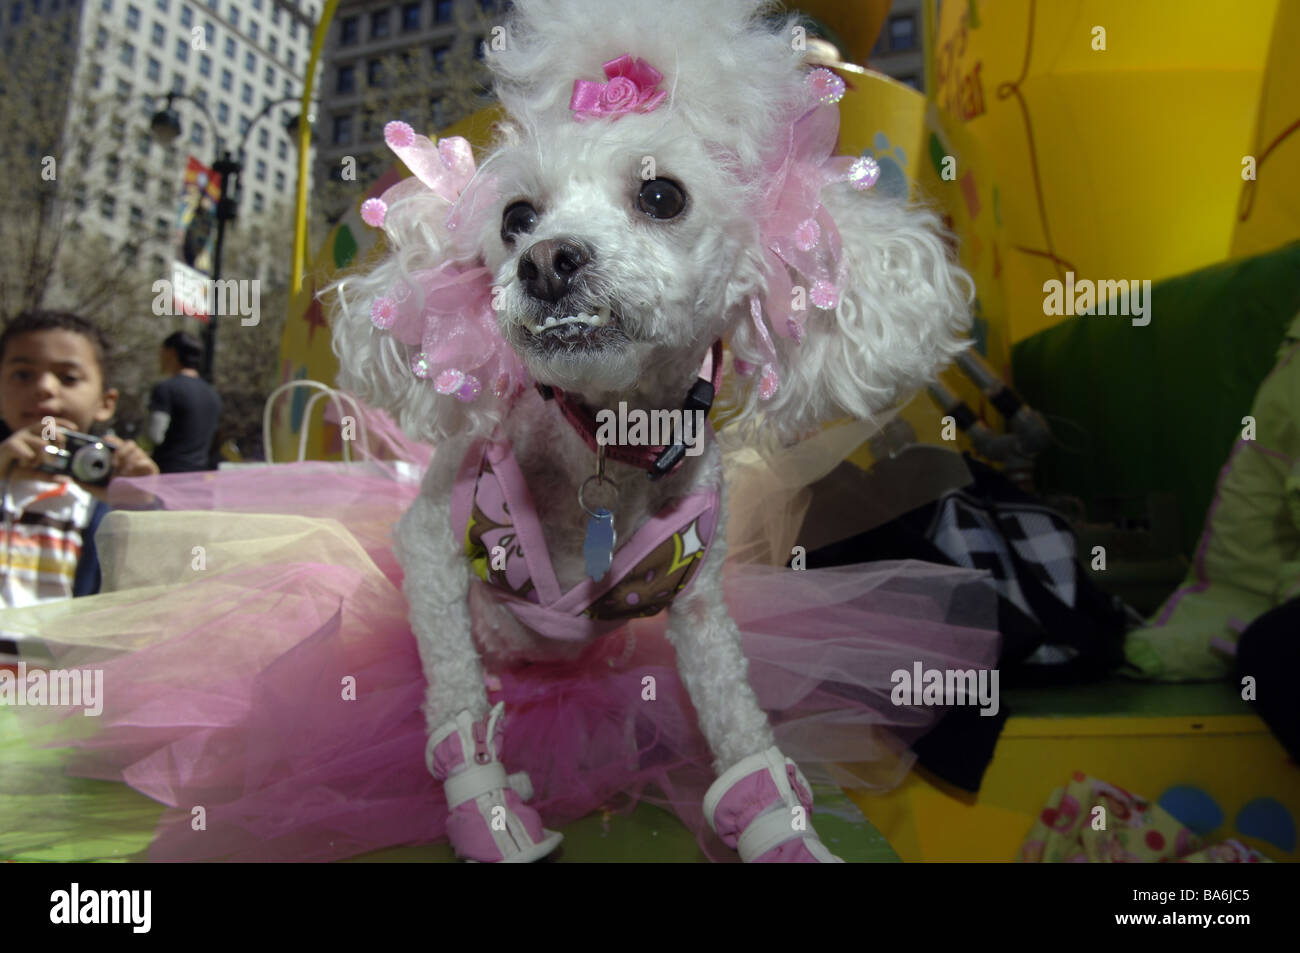 Hec Lin a toy poodle dressed as a ballerina with pink bows in her hair at the annual Macy s Petacular in Herald - Stock Image